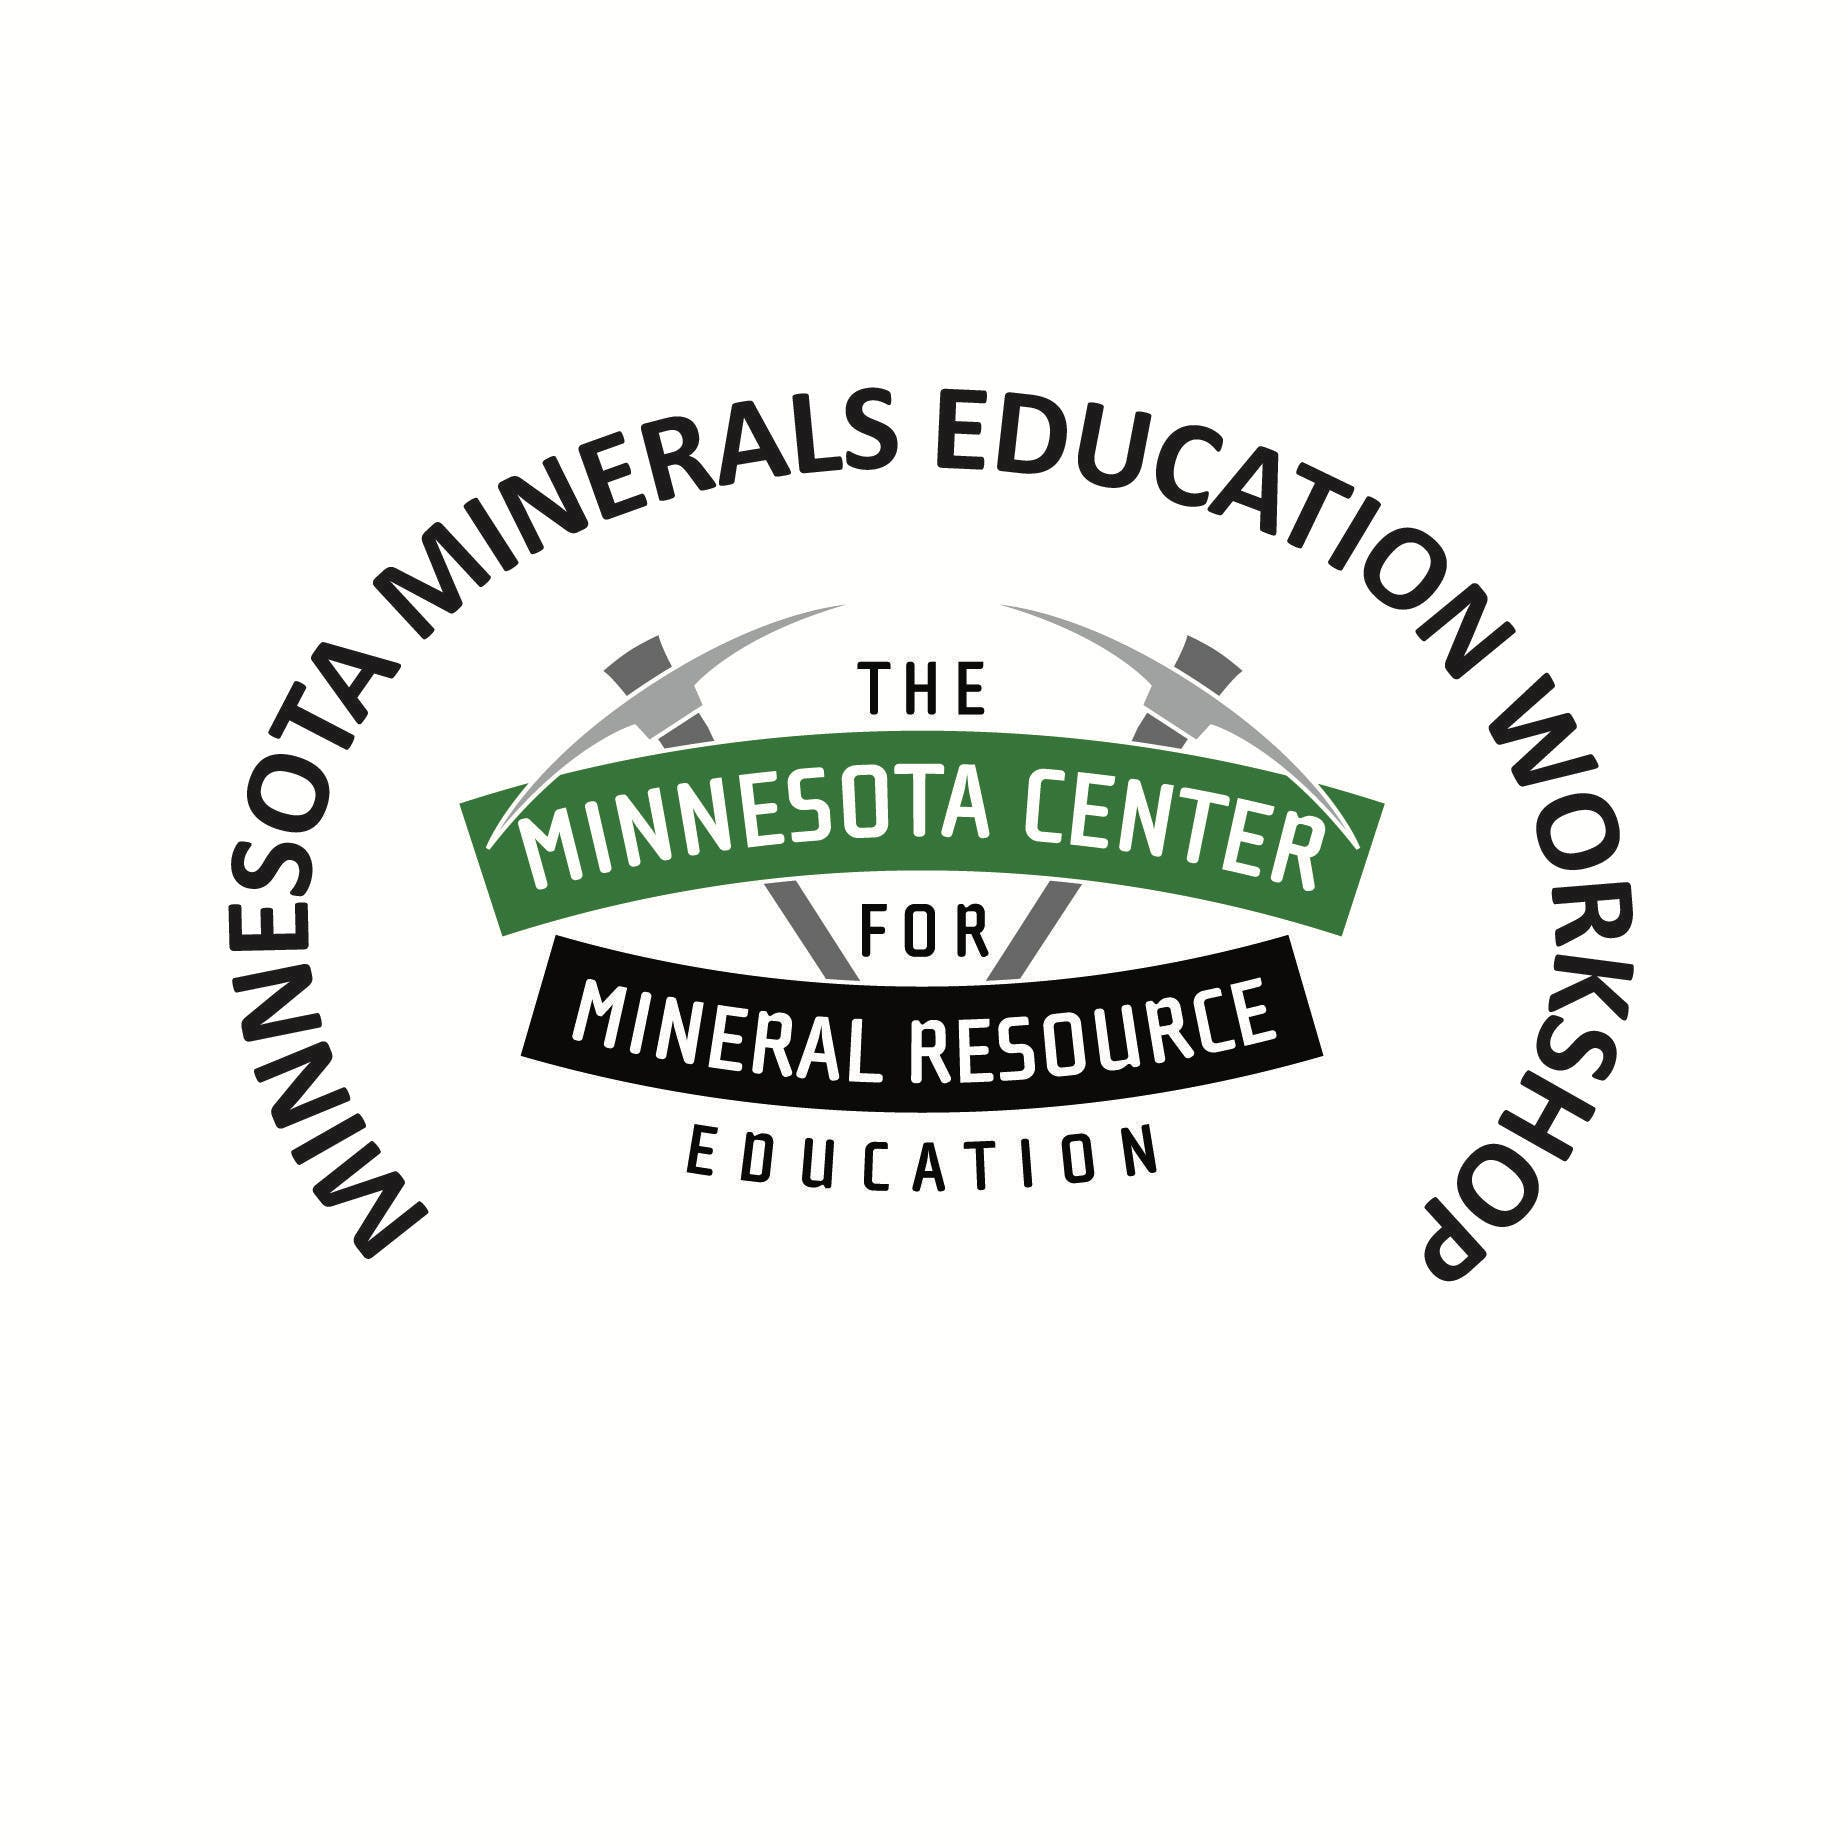 2018 Minnesota Minerals Education Workshop